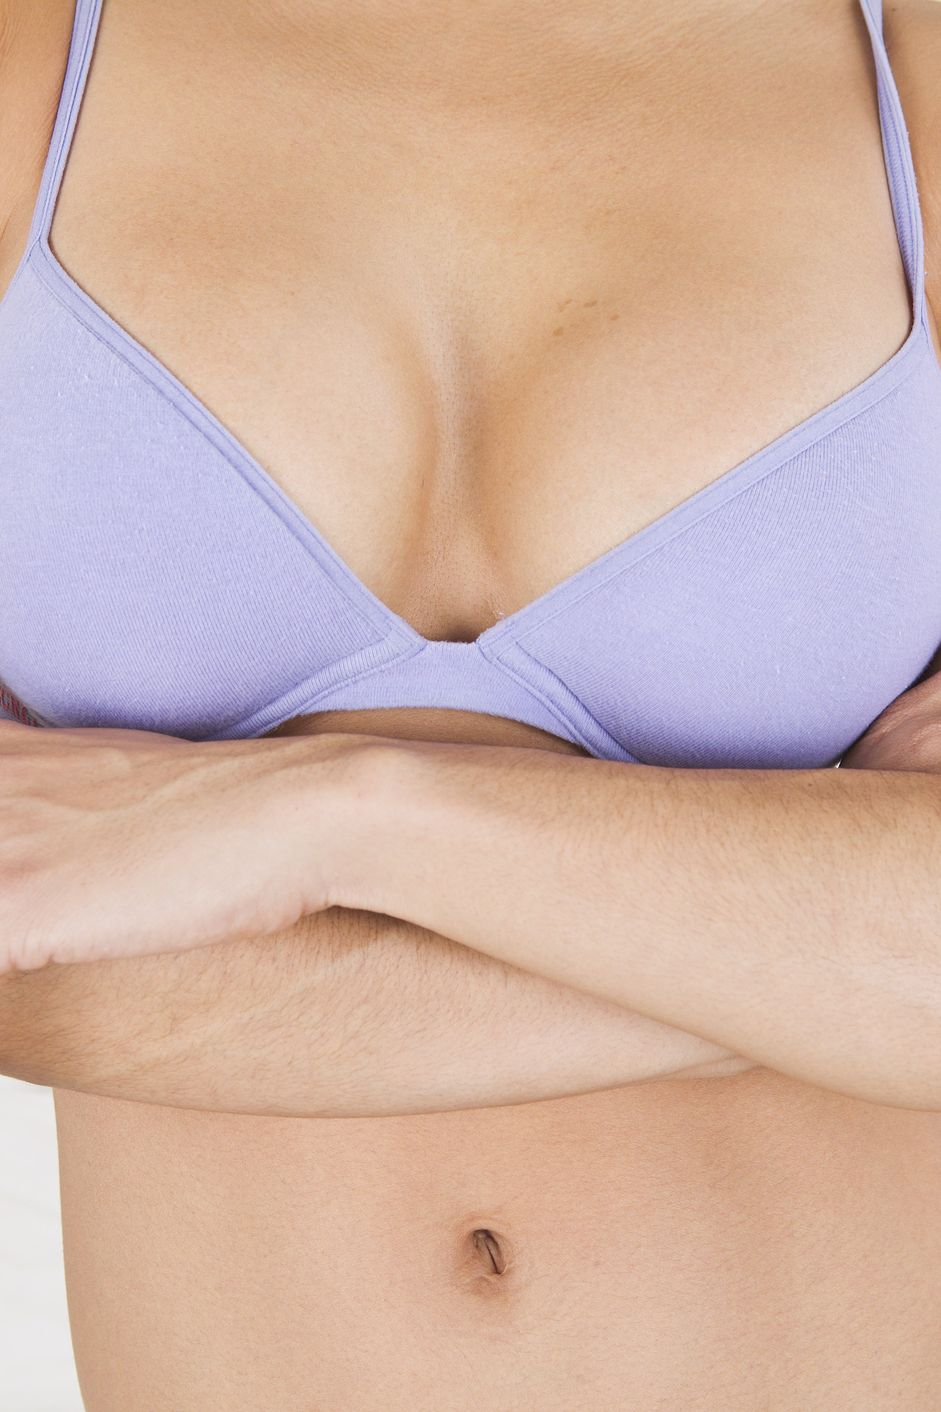 Early signs and symptoms of breast cancer